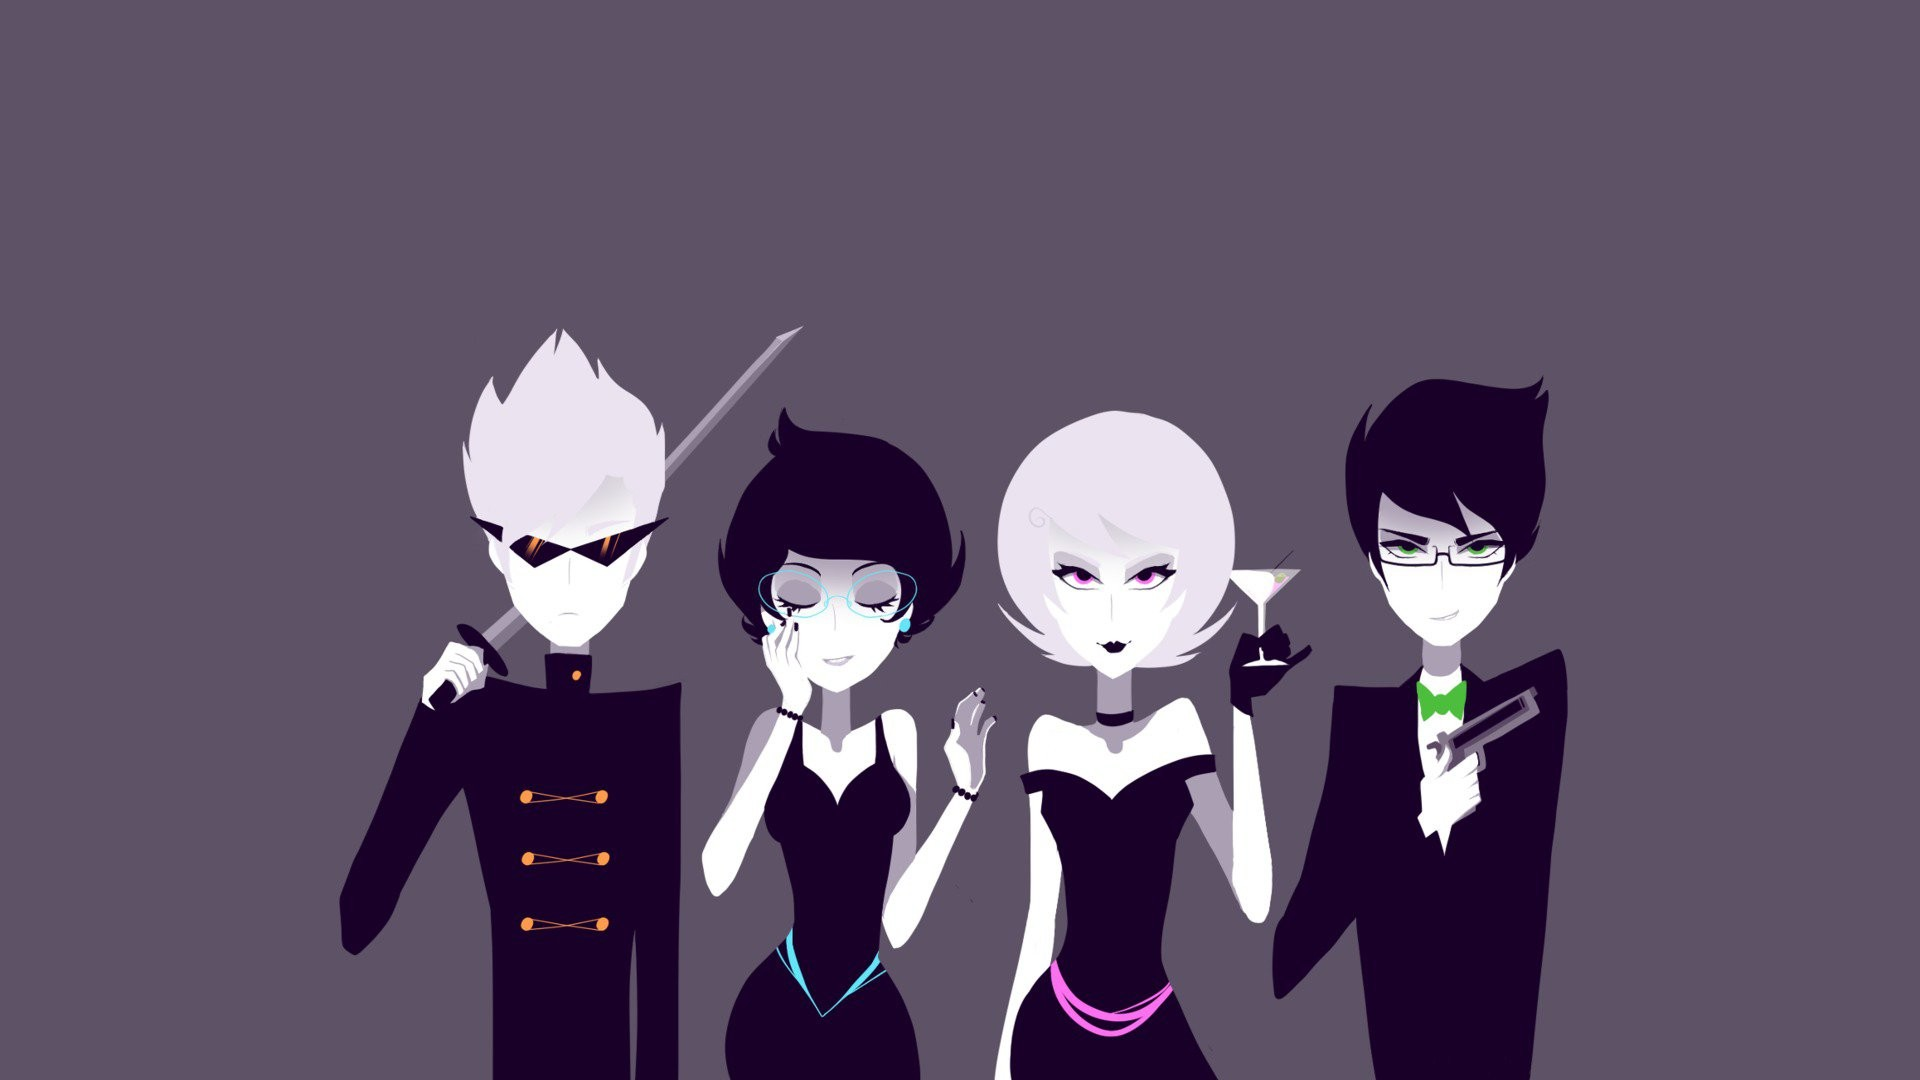 Iphone 7 Stuck On Wallpaper Hd Homestuck Wallpaper 70 Images